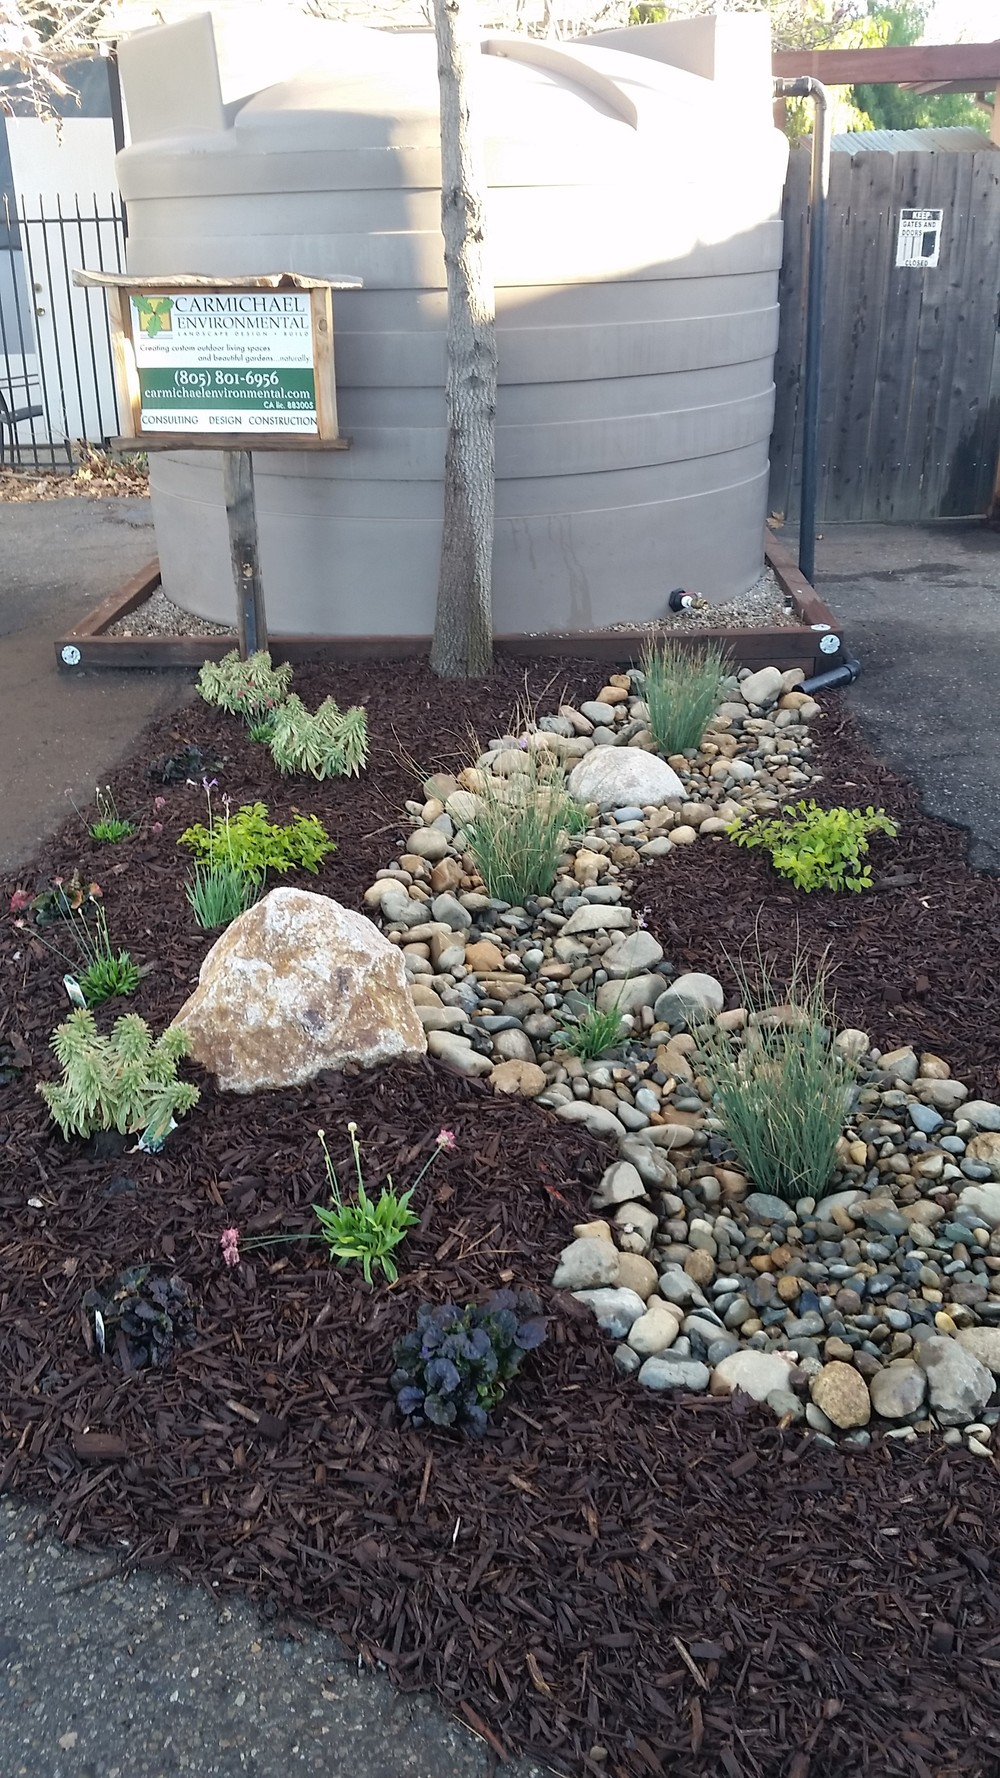 Rain Tank with Bioswale Overflow